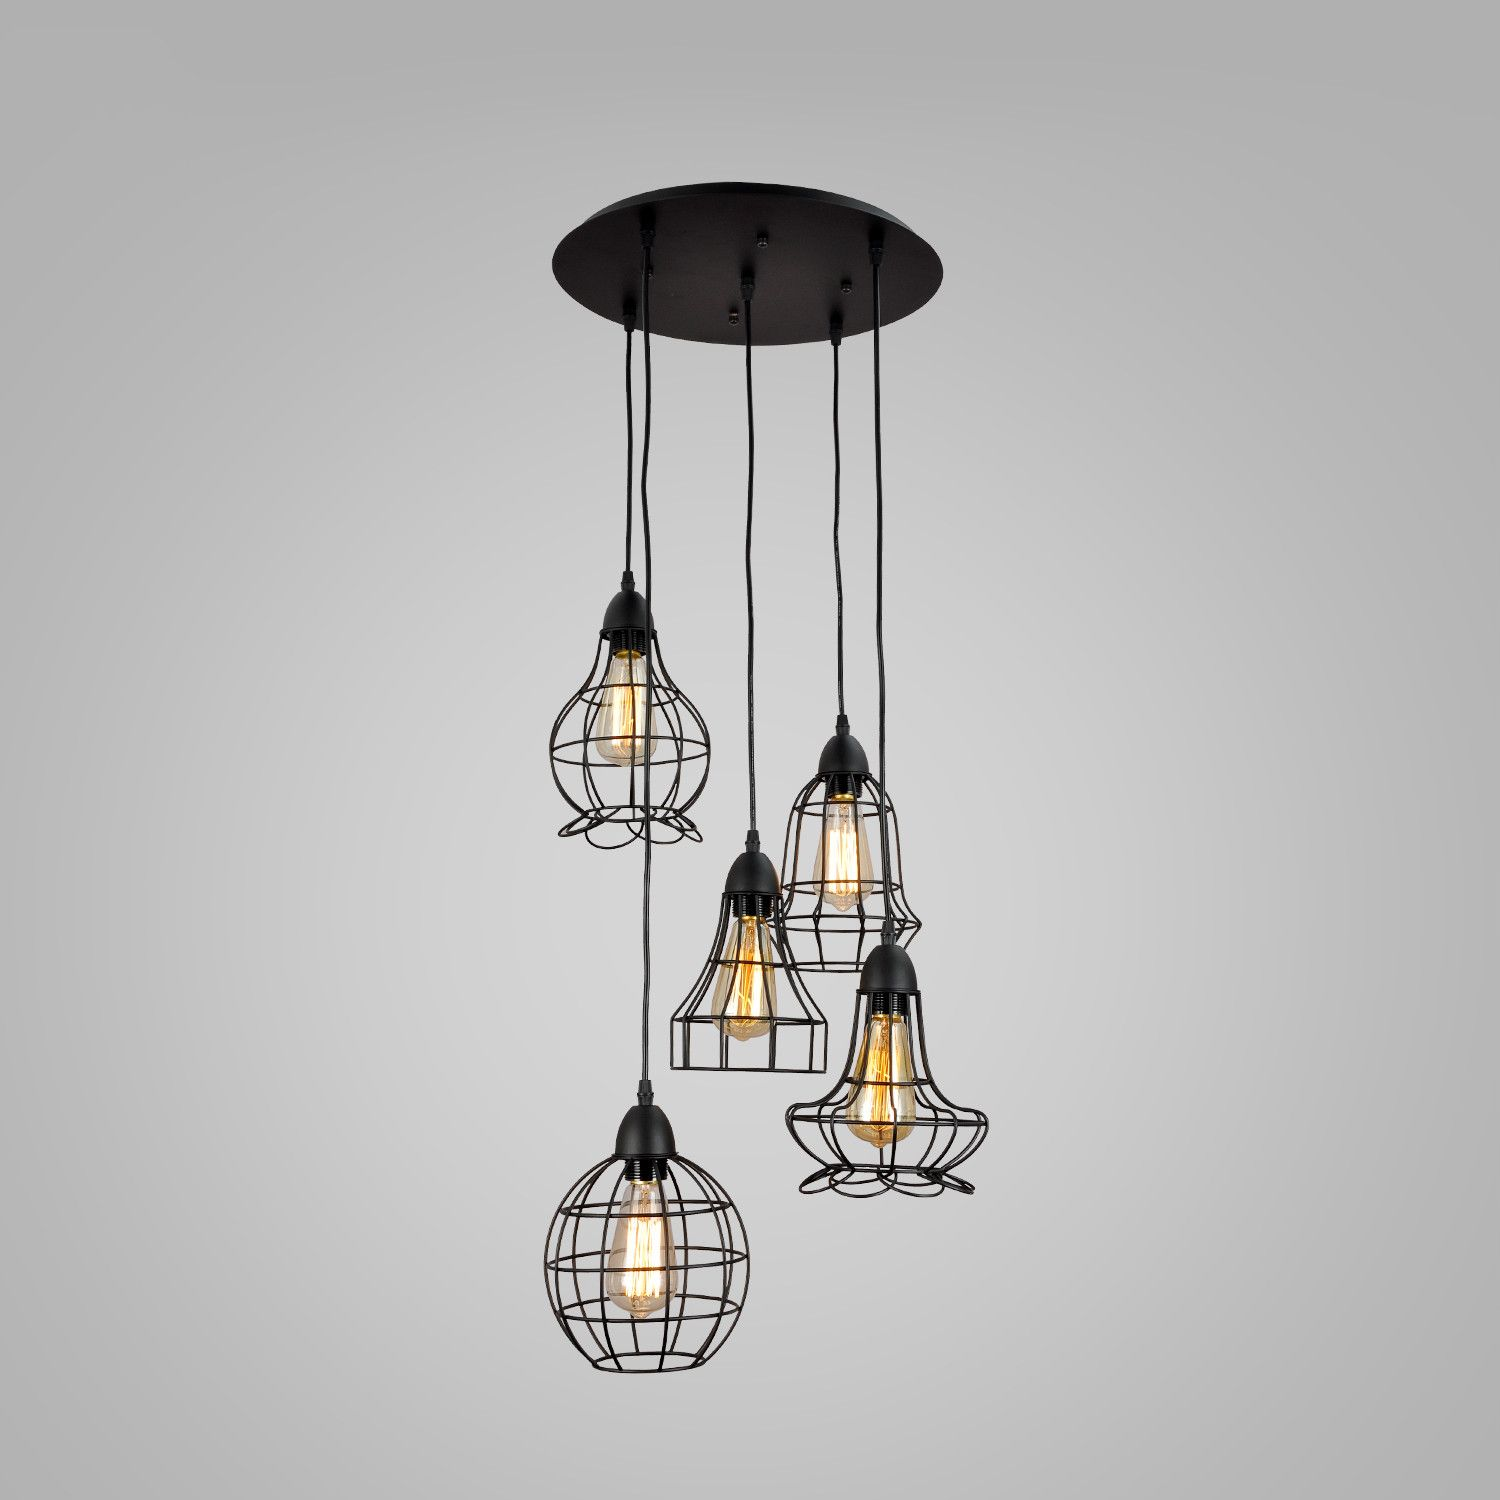 UNITARY BRAND Rustic Barn Metal Chandelier Max 200W With 5 Light